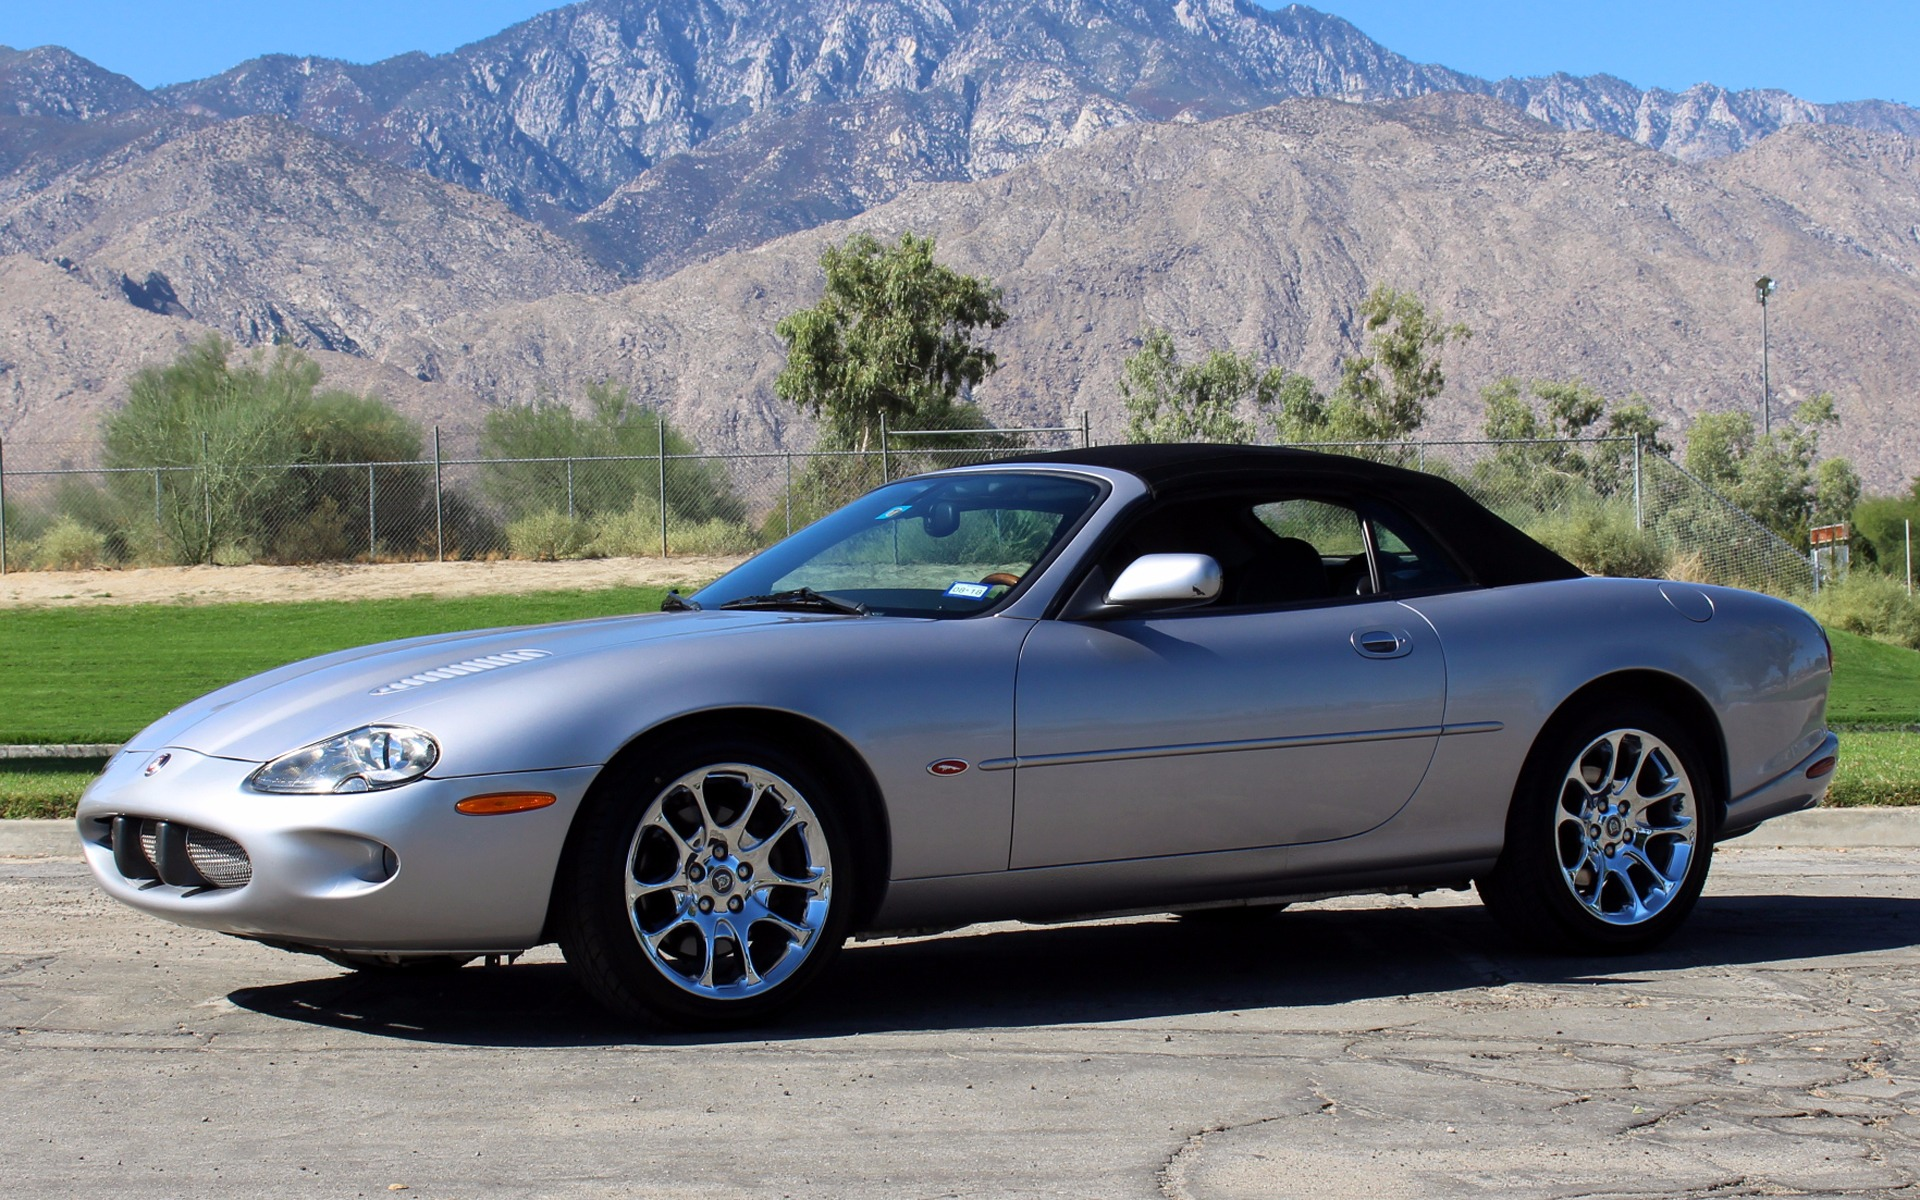 2000 jaguar xkr stock jo235 for sale near palm springs ca ca jaguar dealer. Black Bedroom Furniture Sets. Home Design Ideas